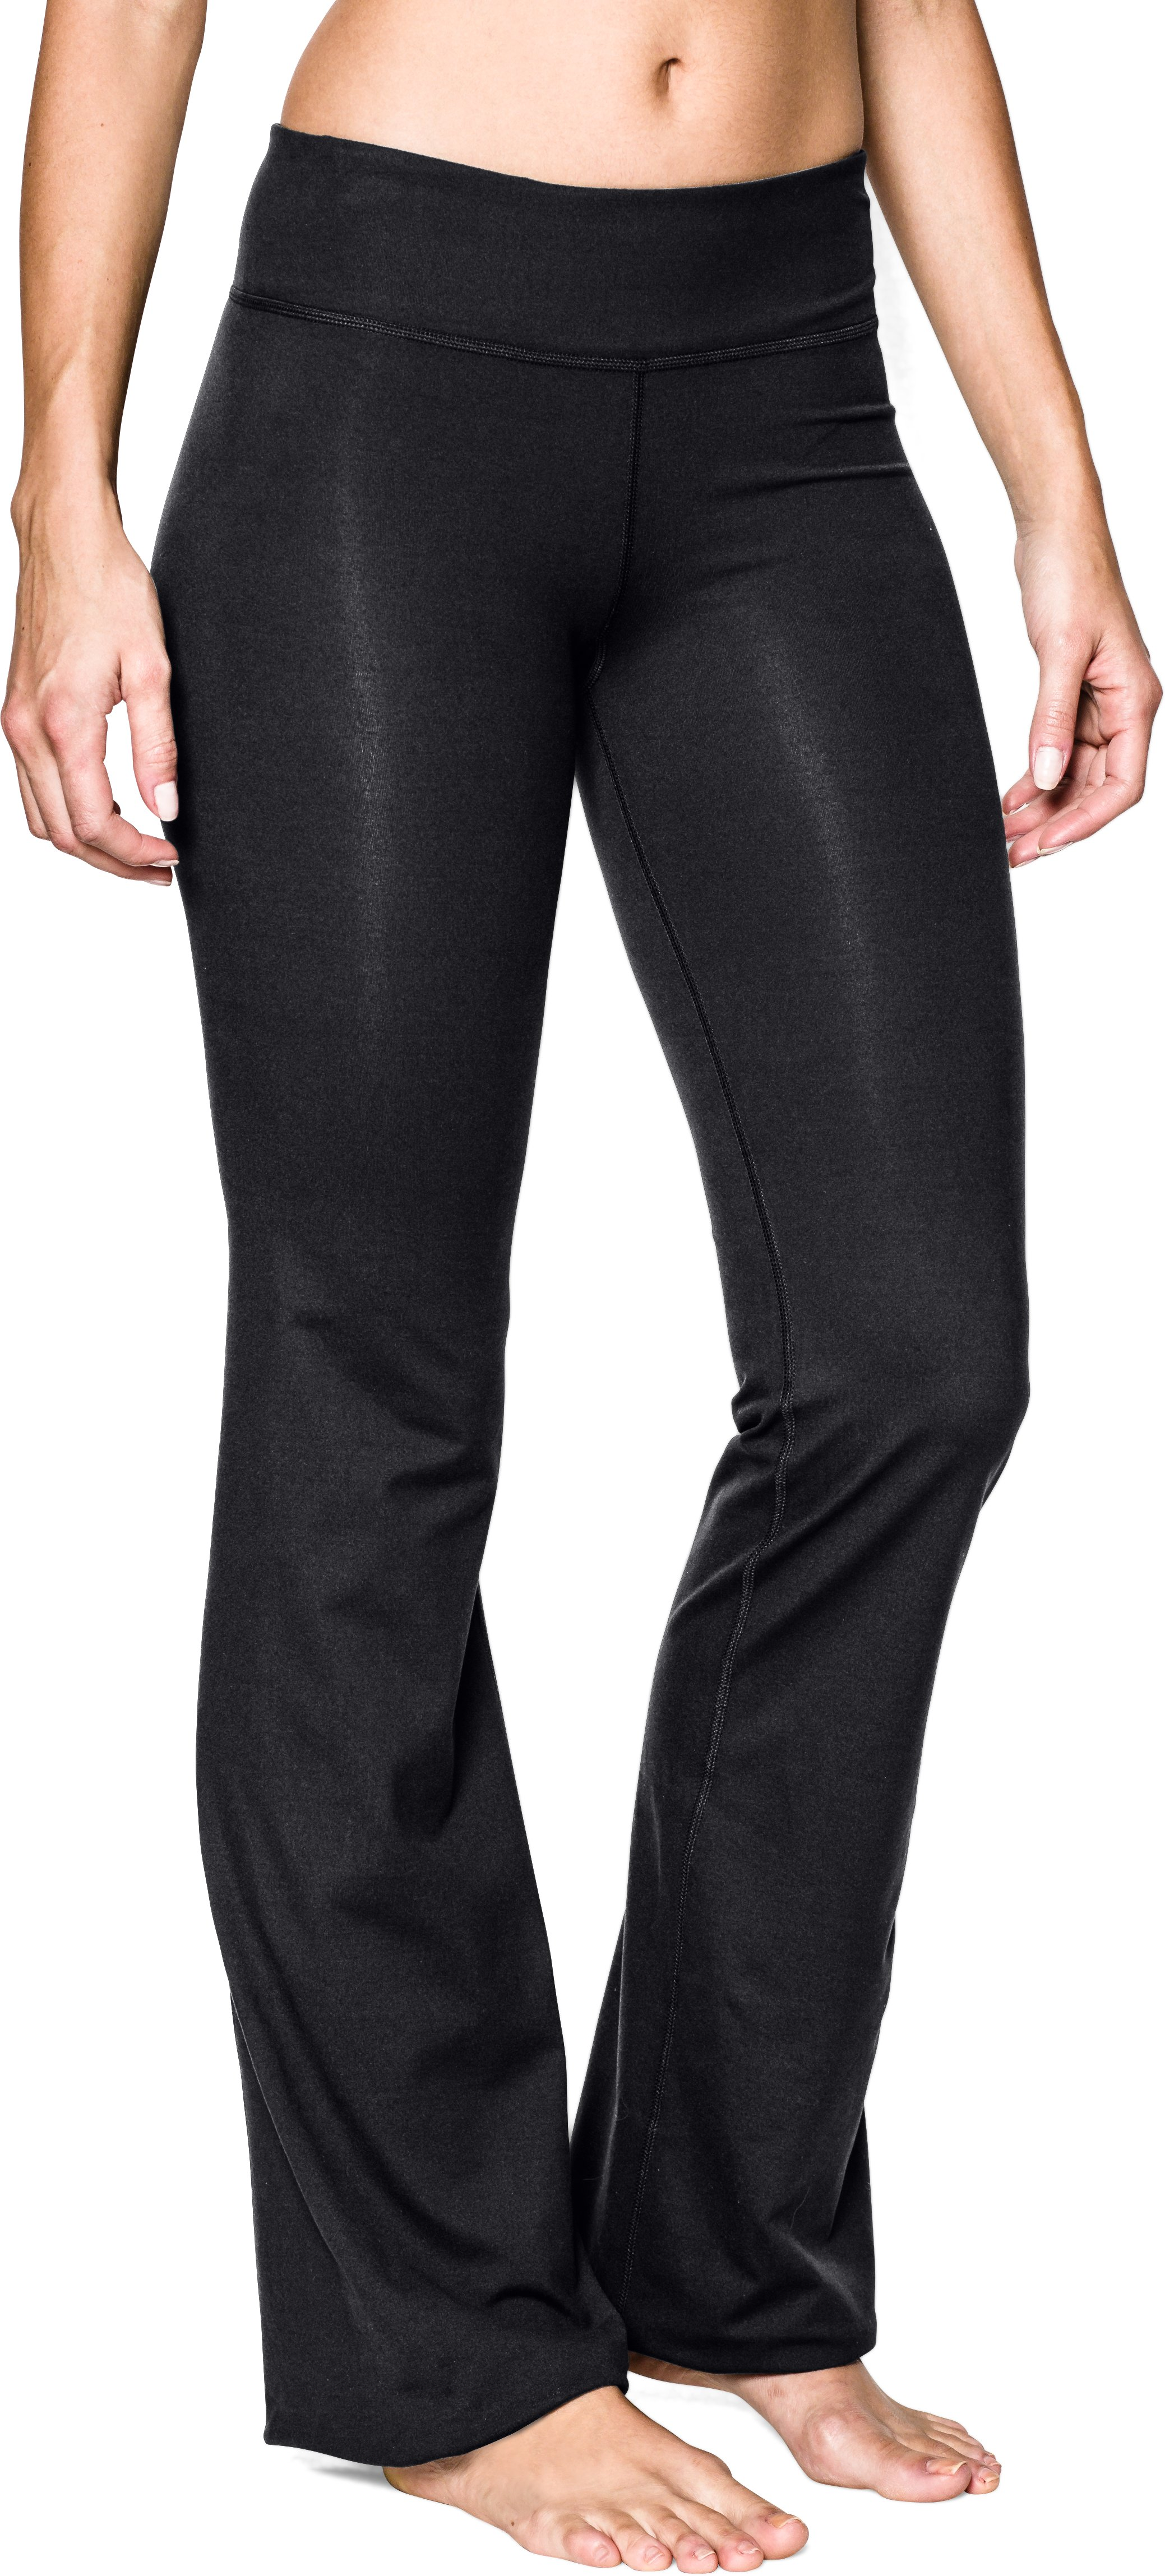 Women's UA Perfect Pant - 35.5"